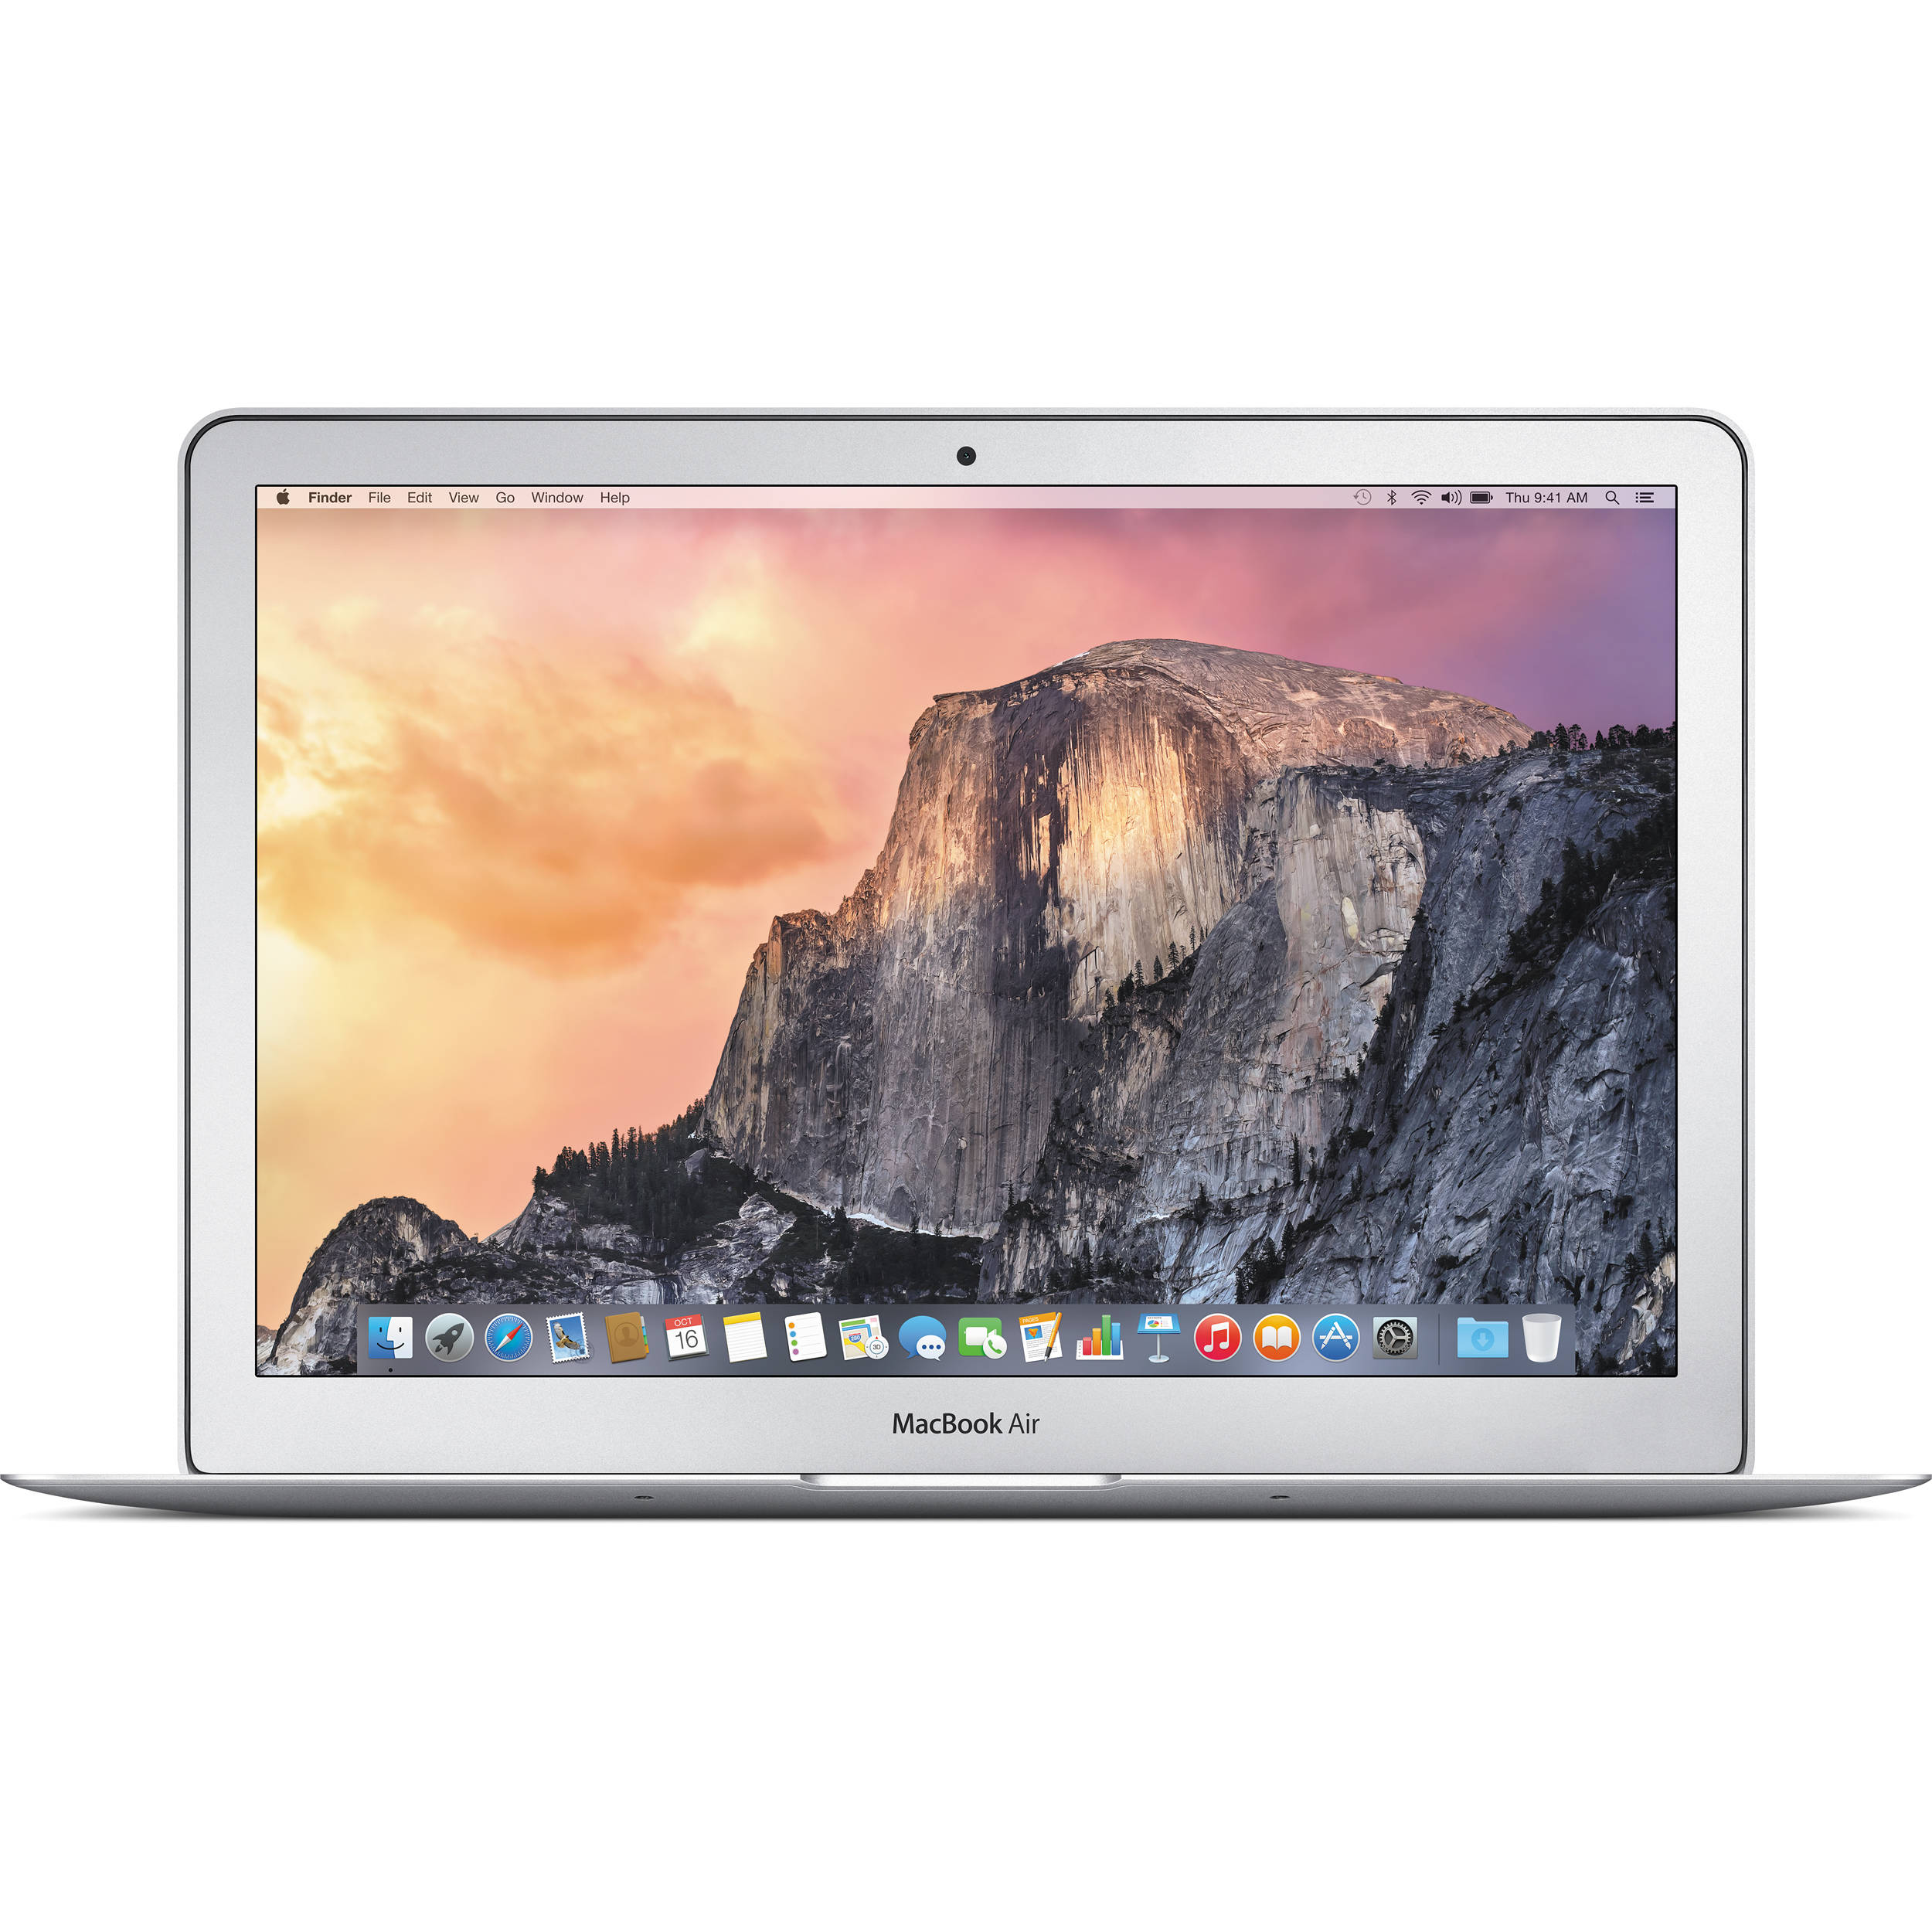 promo macbook air 13